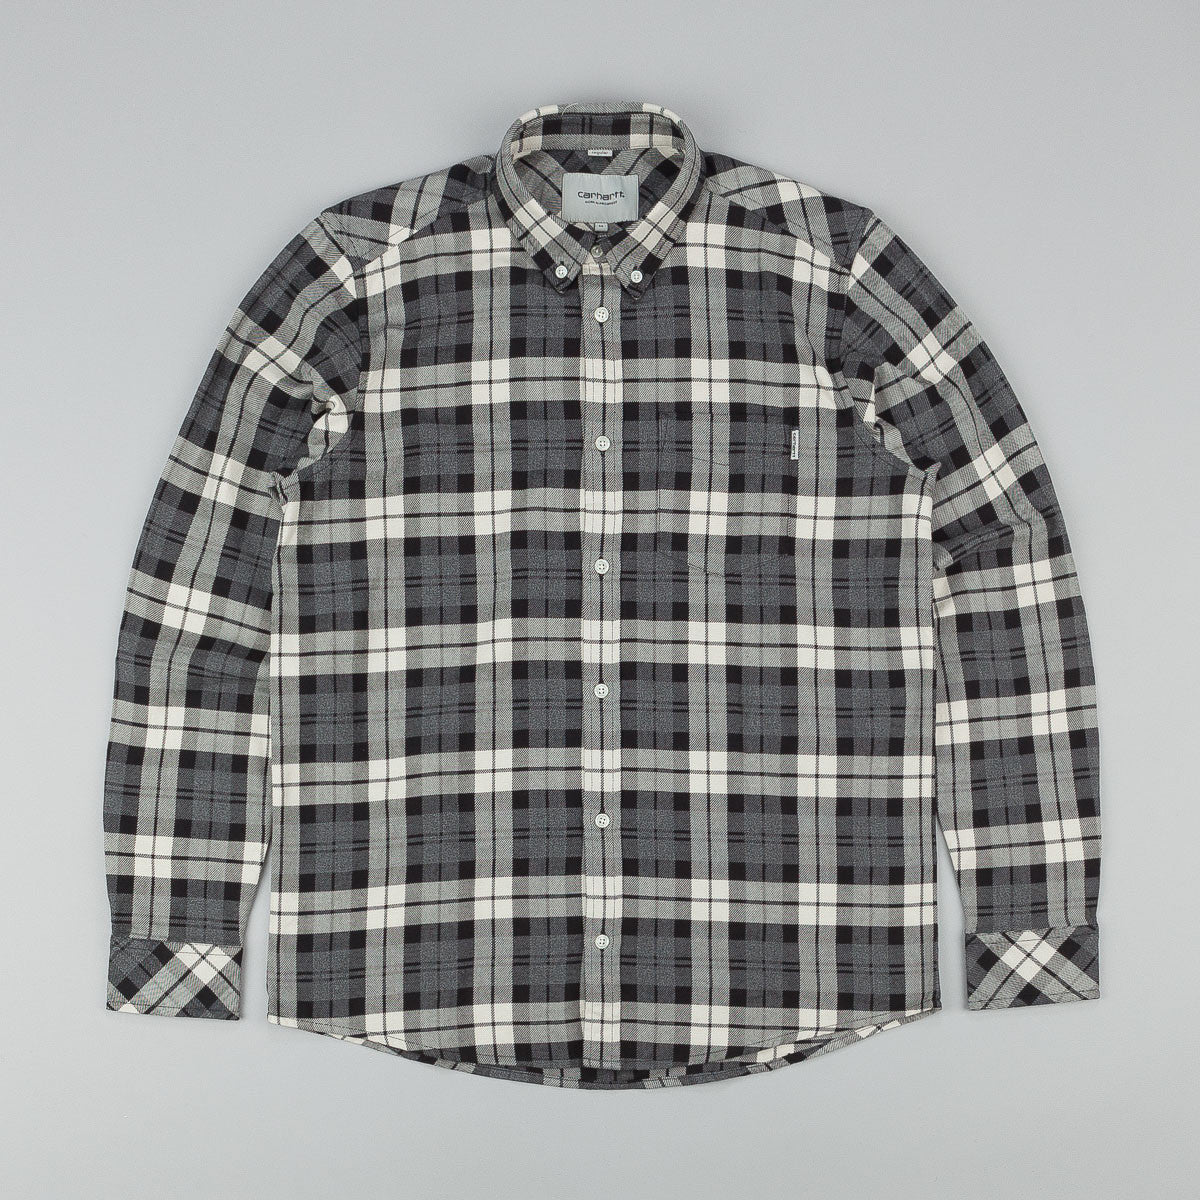 Carhartt Baker Long Sleeve Shirt